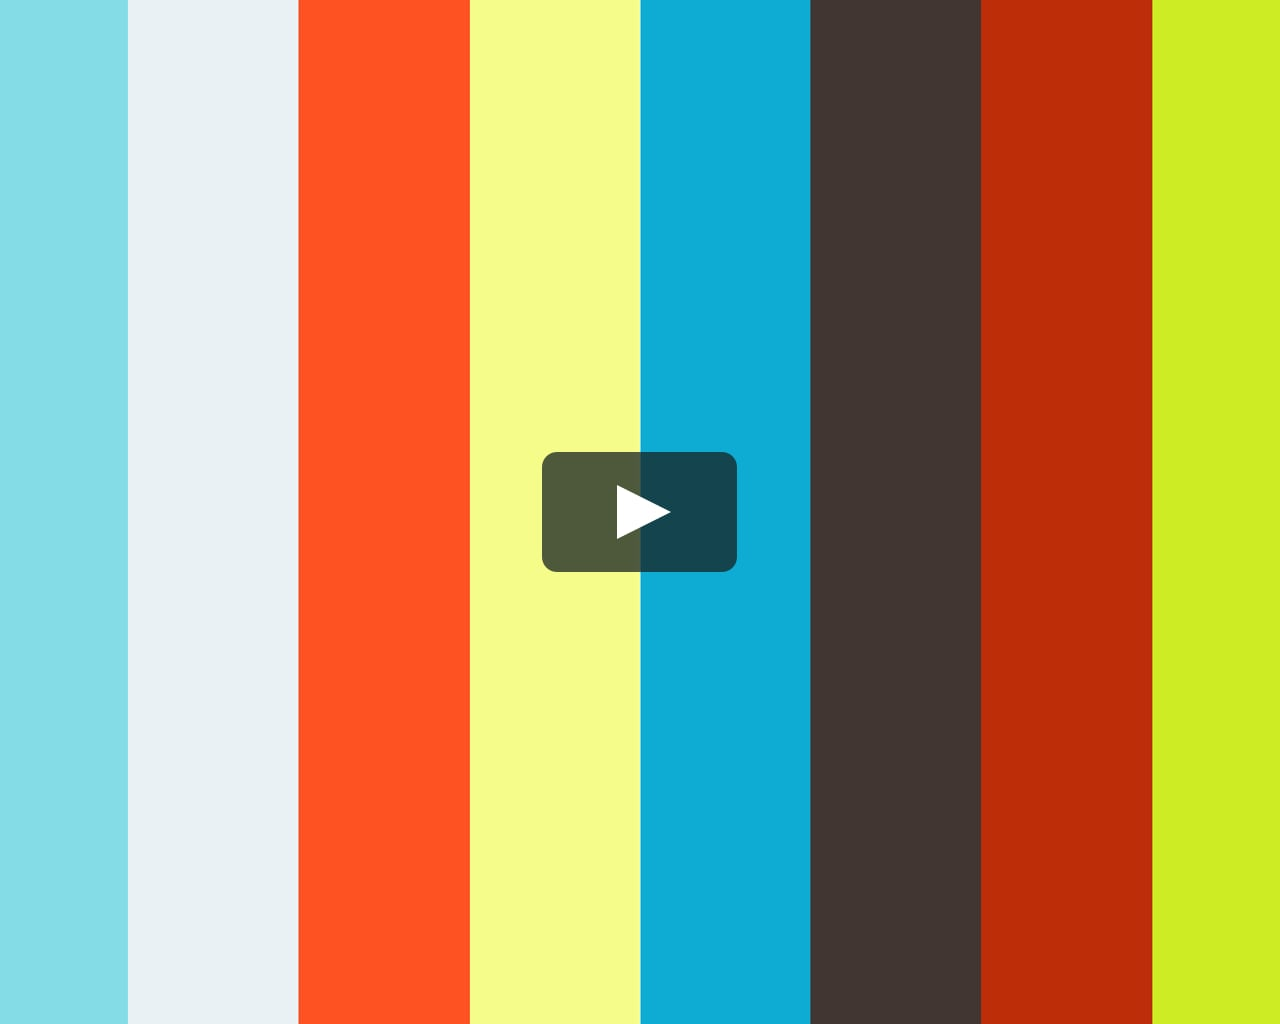 Butcher killing a Pig brutal - a true Dokumentation- banned in youtube